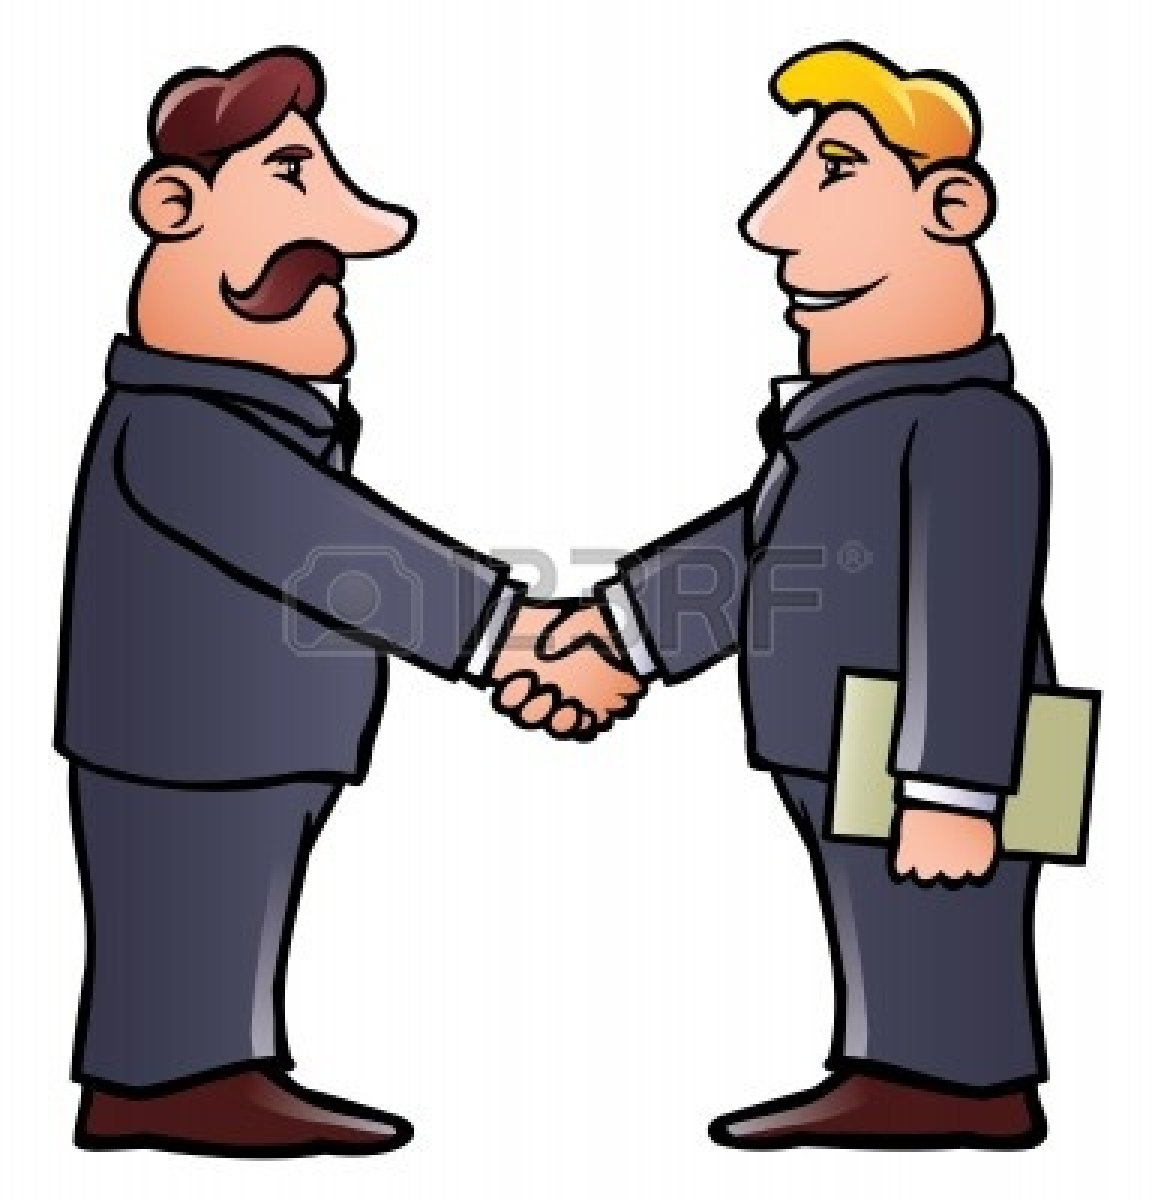 Two soldiers shaking hands clipart picture transparent library Guys Shaking Hands Clipart picture transparent library